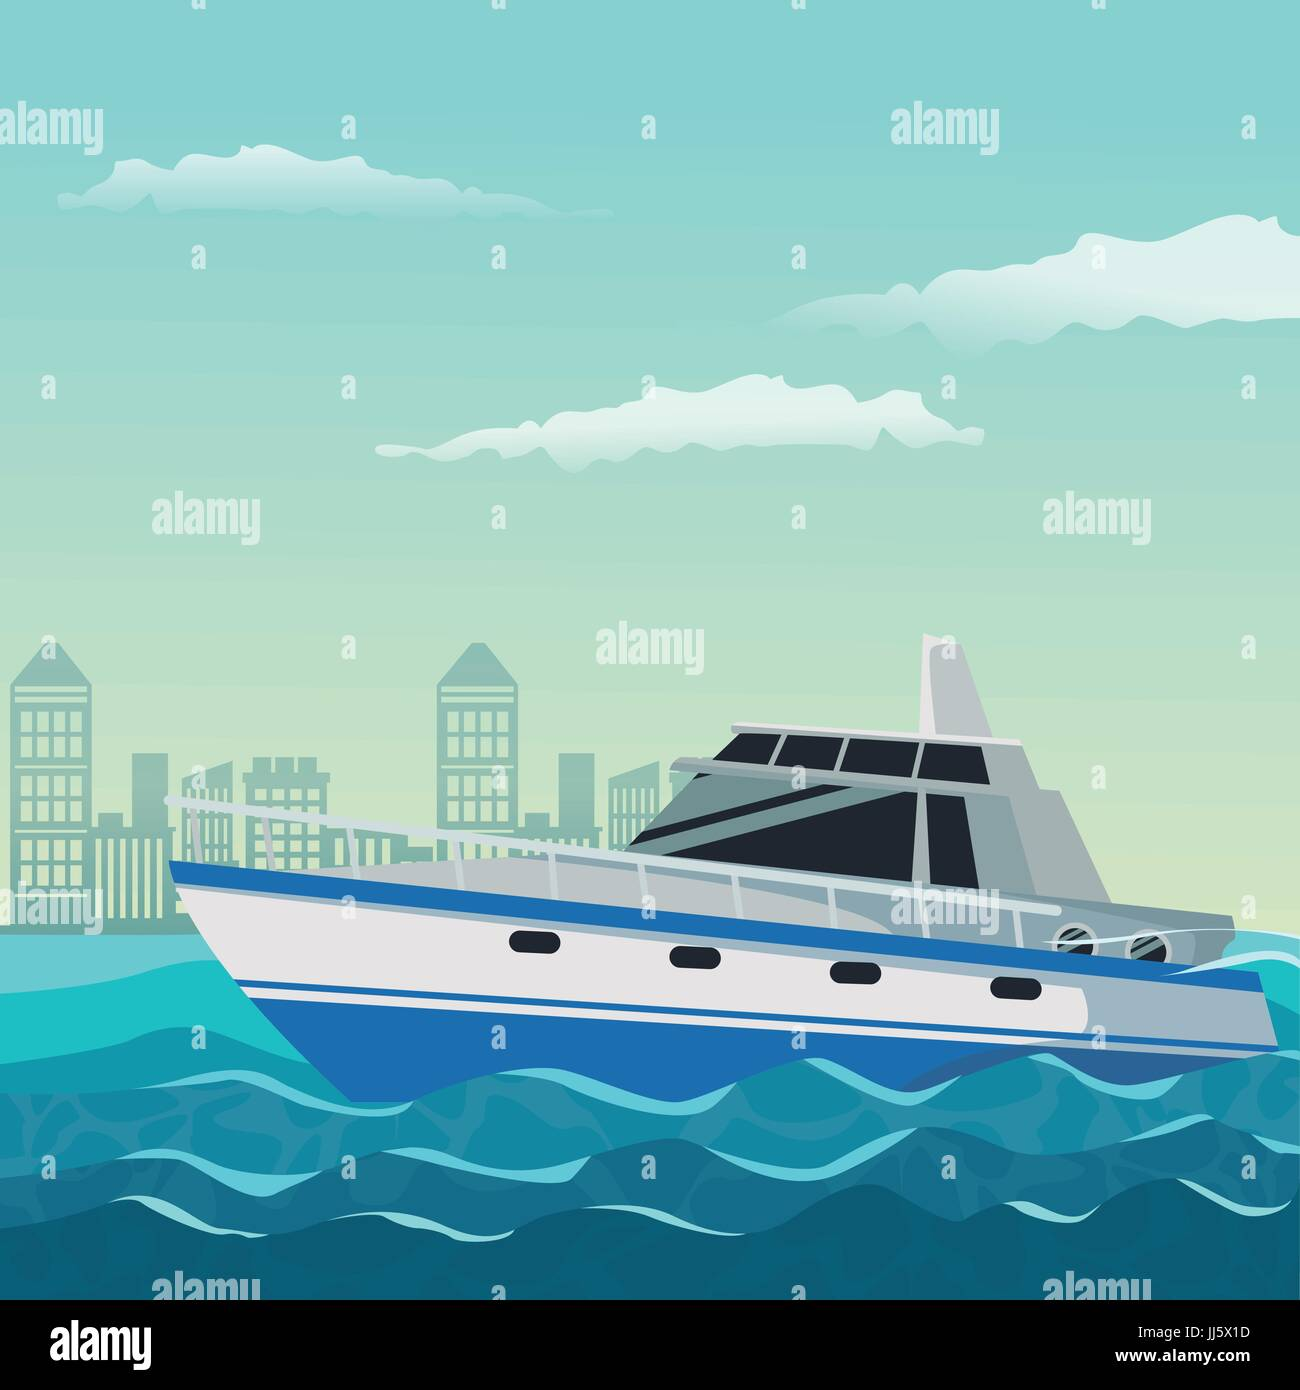 color background city landscape with boat over water - Stock Vector